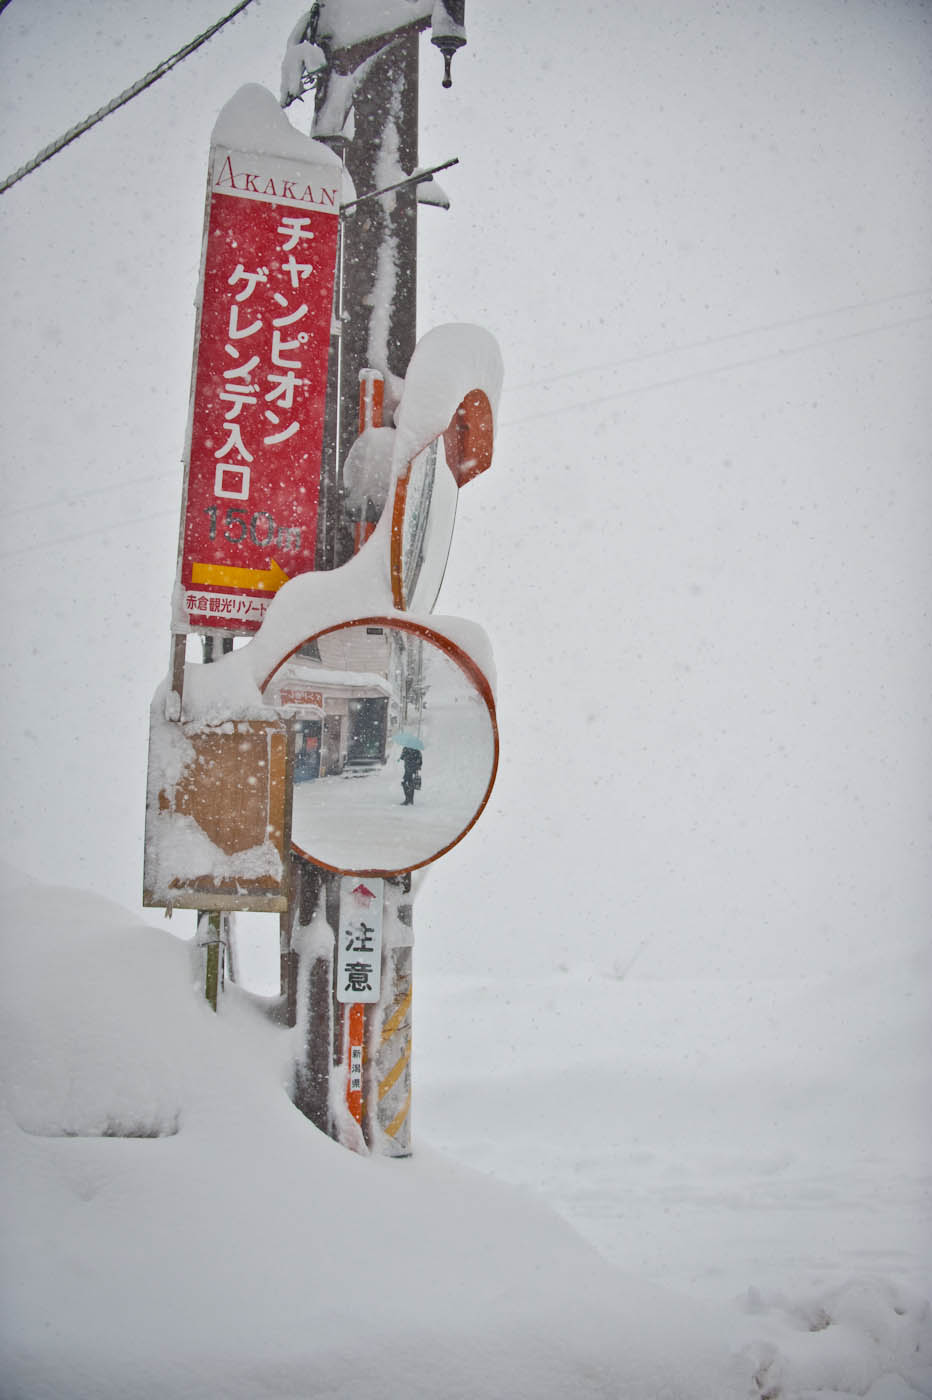 Myoko Kogen Snow Report 2 January 2014